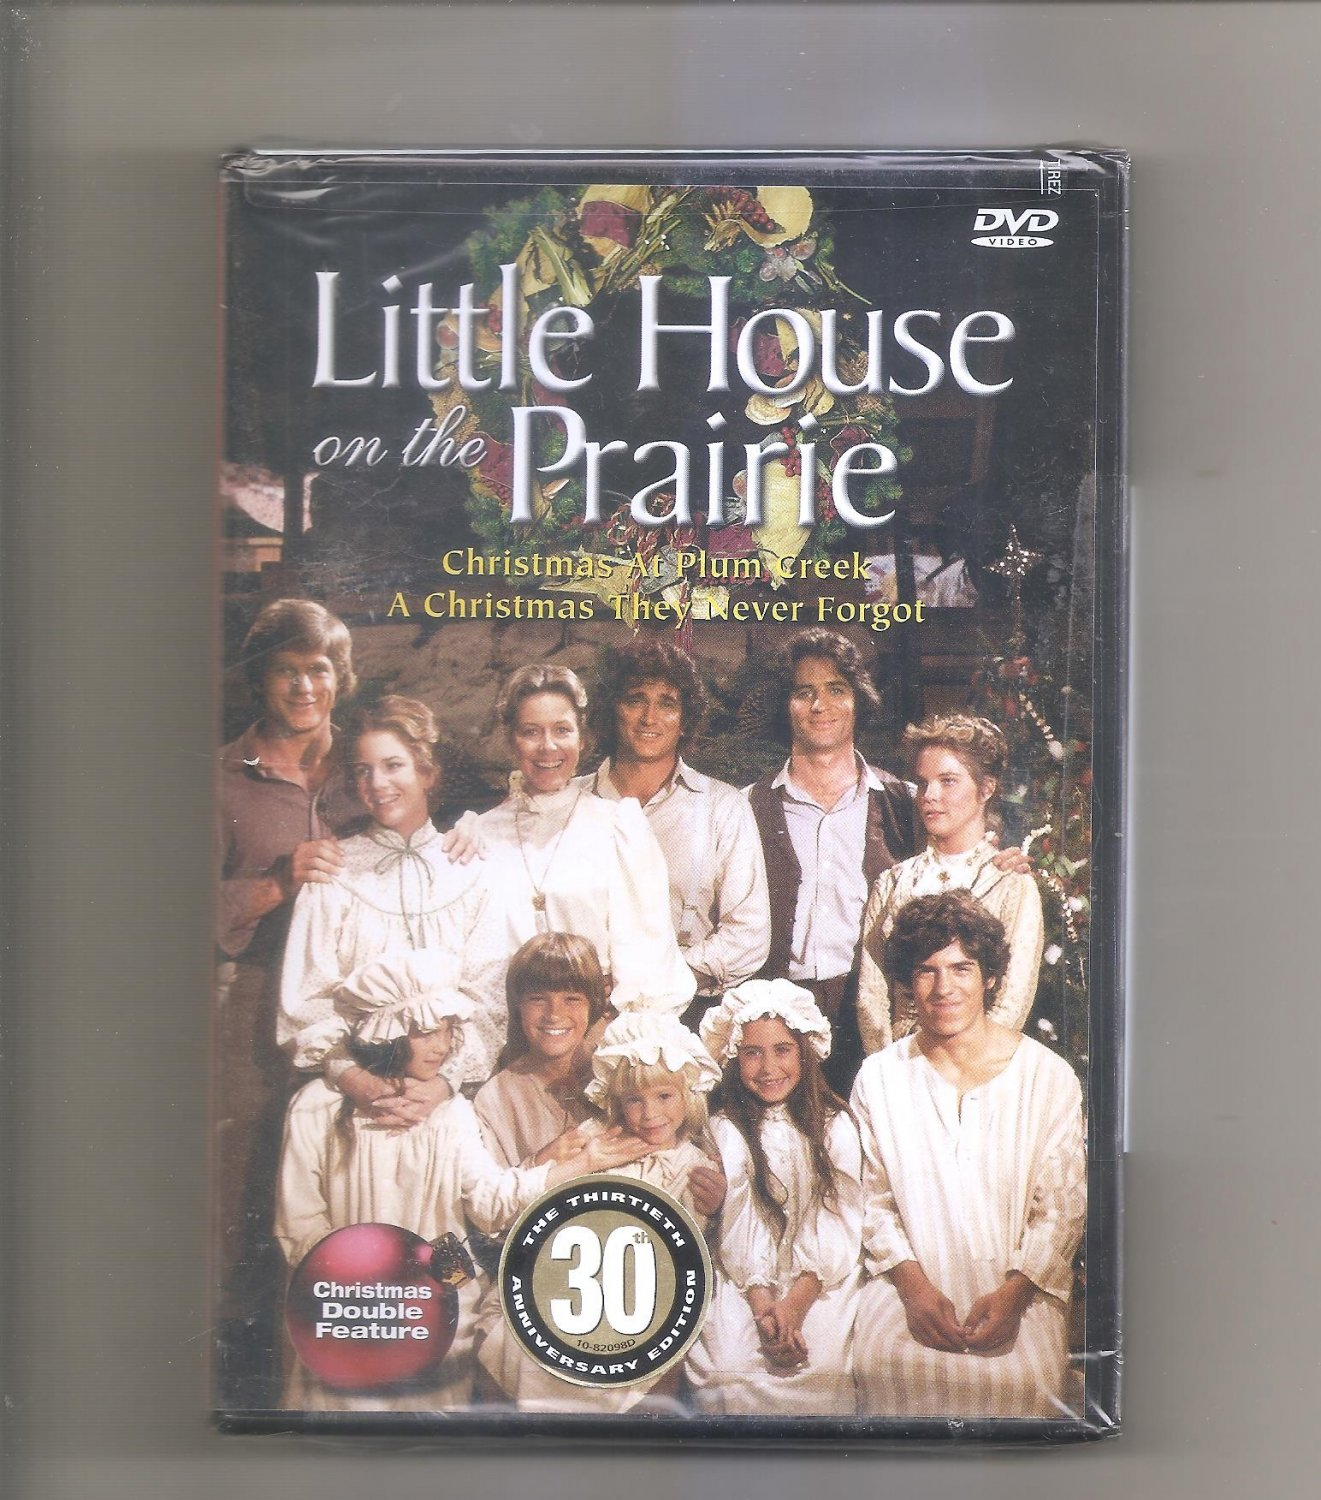 Little House on the Prairie: Christmas at Plum Creek / A Christmas They Never Forgot